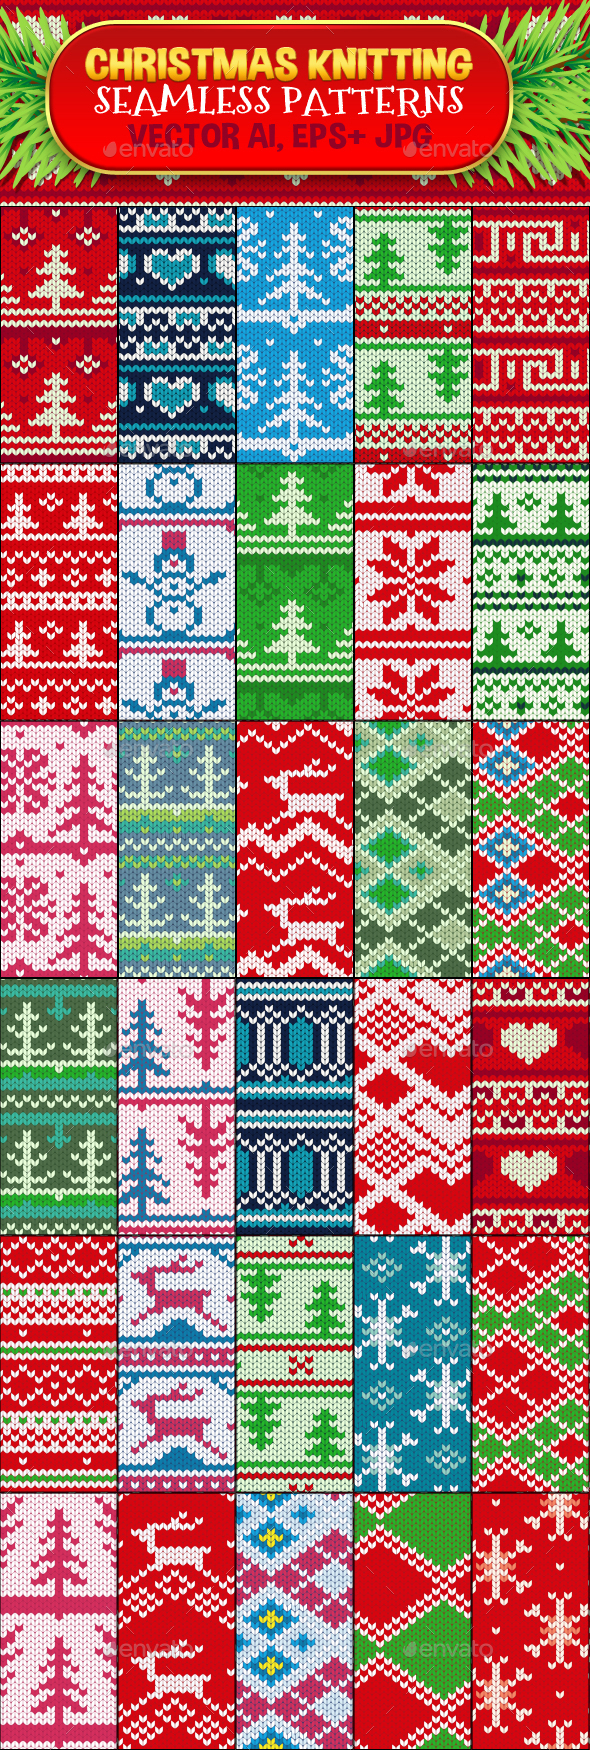 Seamless Knitting Patterns Seamless And Wool Graphics Designs Templates